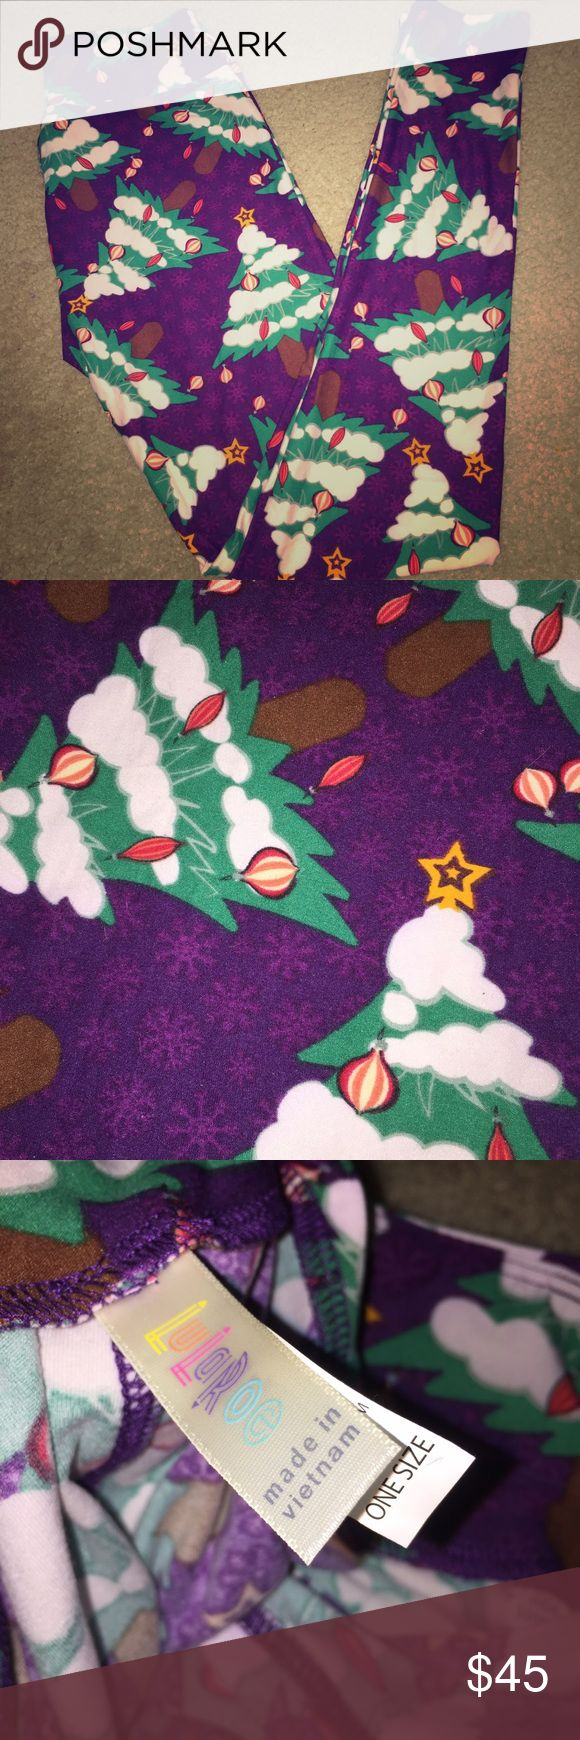 New LuLaRoe Christmas Leggings Awesome LuLaRoe Leggings! New never worn will come with tag and package just took out for pics. I just overdid it with holiday leggings  will shop today so you have before Christmas! LuLaRoe Pants Leggings